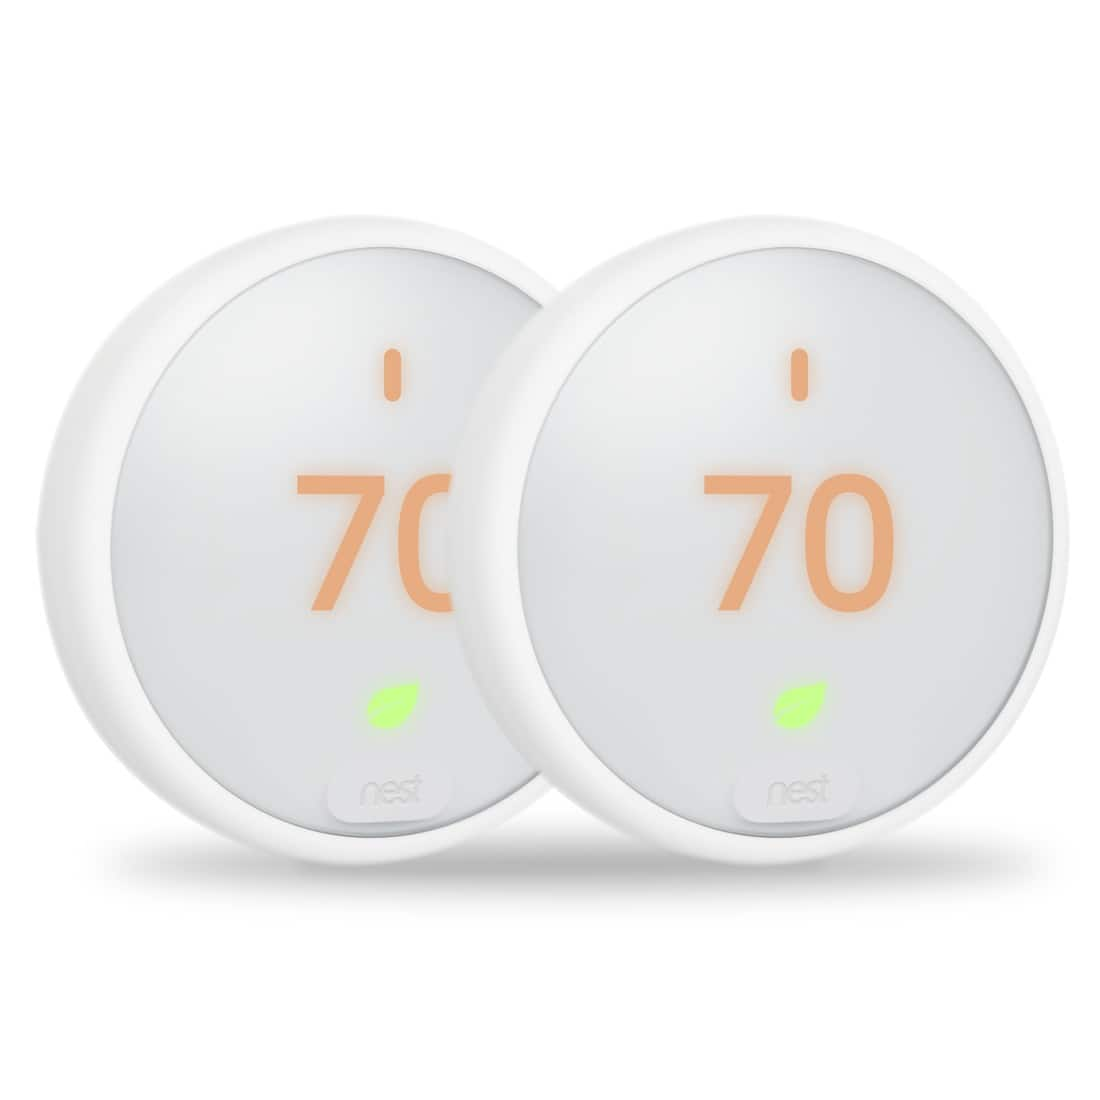 Nest Thermostat E - 2 Pack for $58 (in MA for qualified customers)